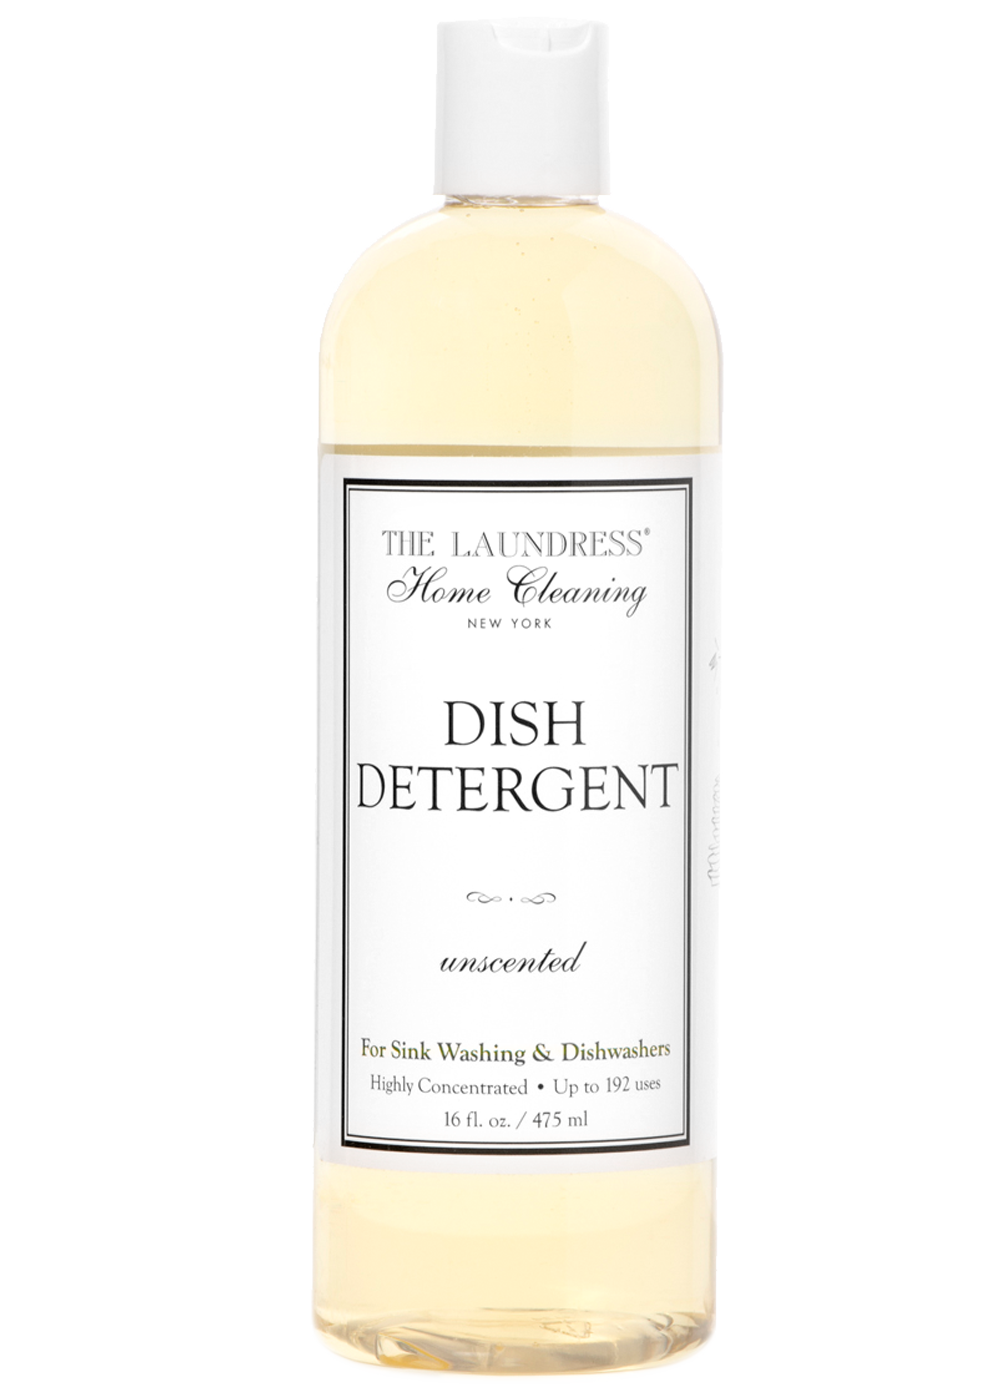 The Laundress Unscented Dish Detergent 16oz In 2021 Dish Detergent Cleaning Dishes Detergent